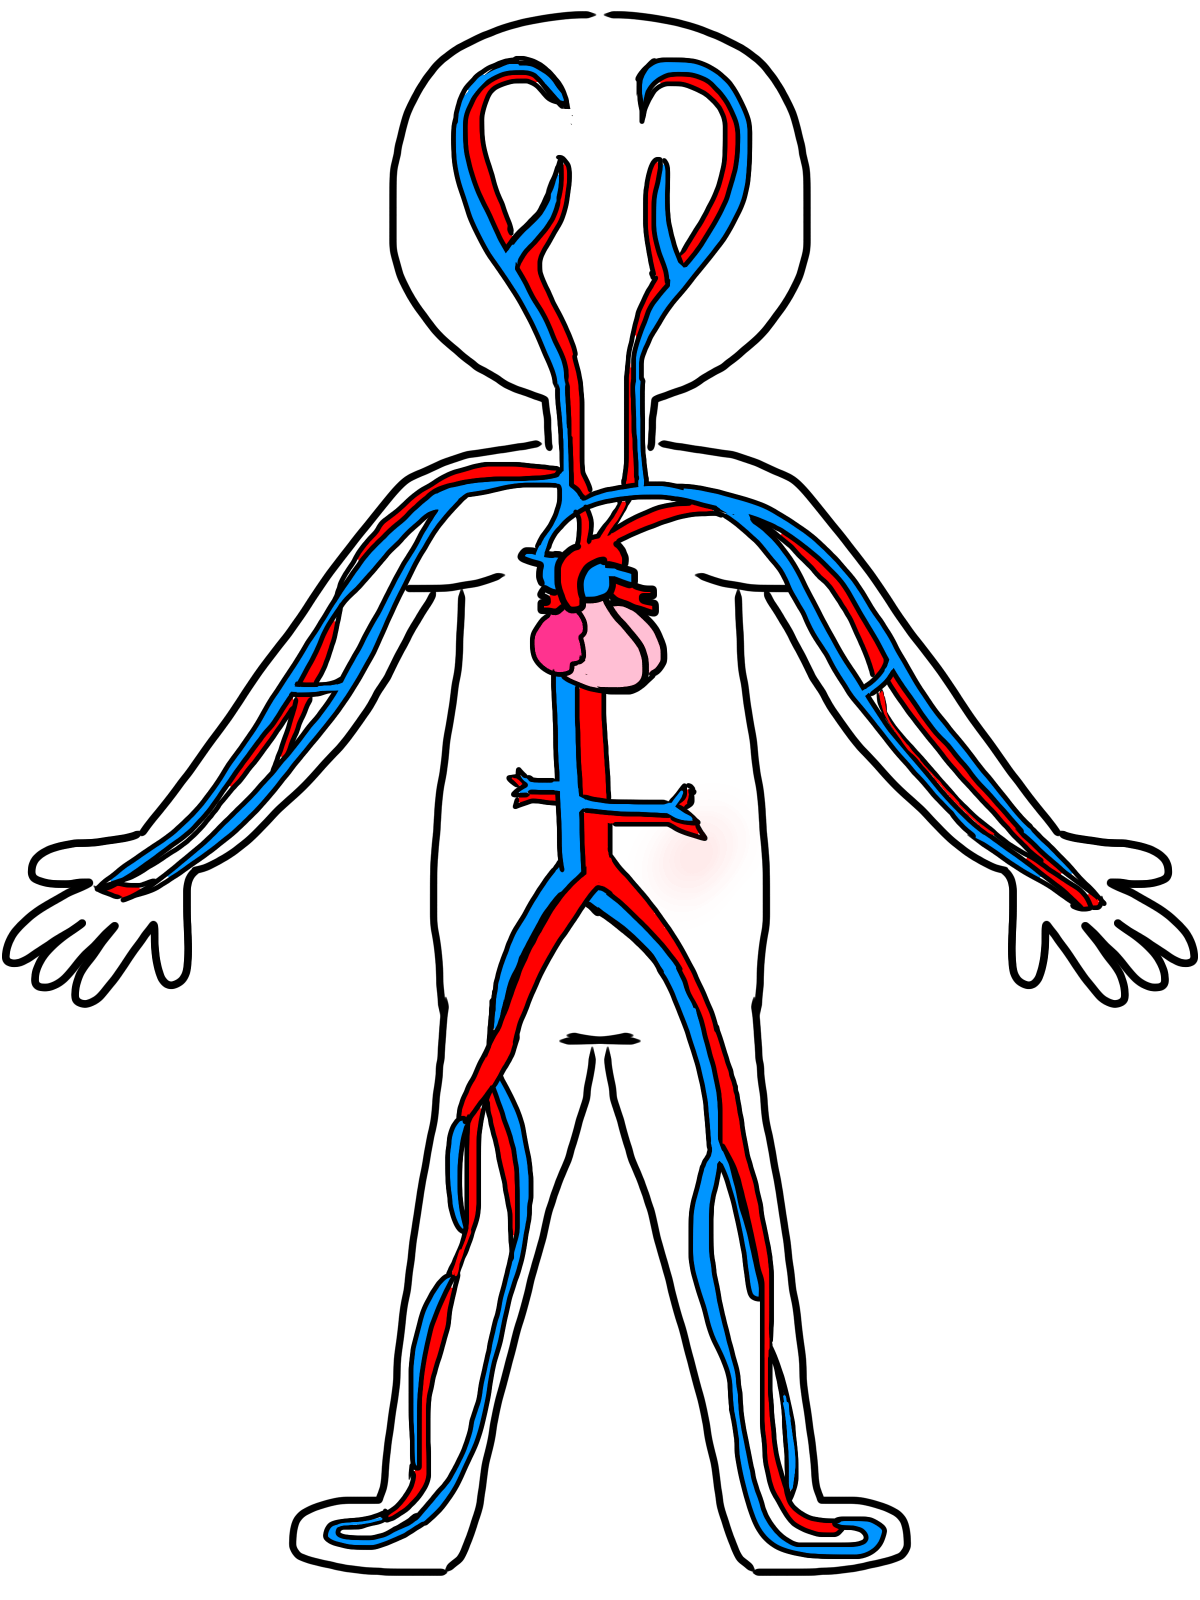 Blood Circulation Clipart 20 Free Cliparts